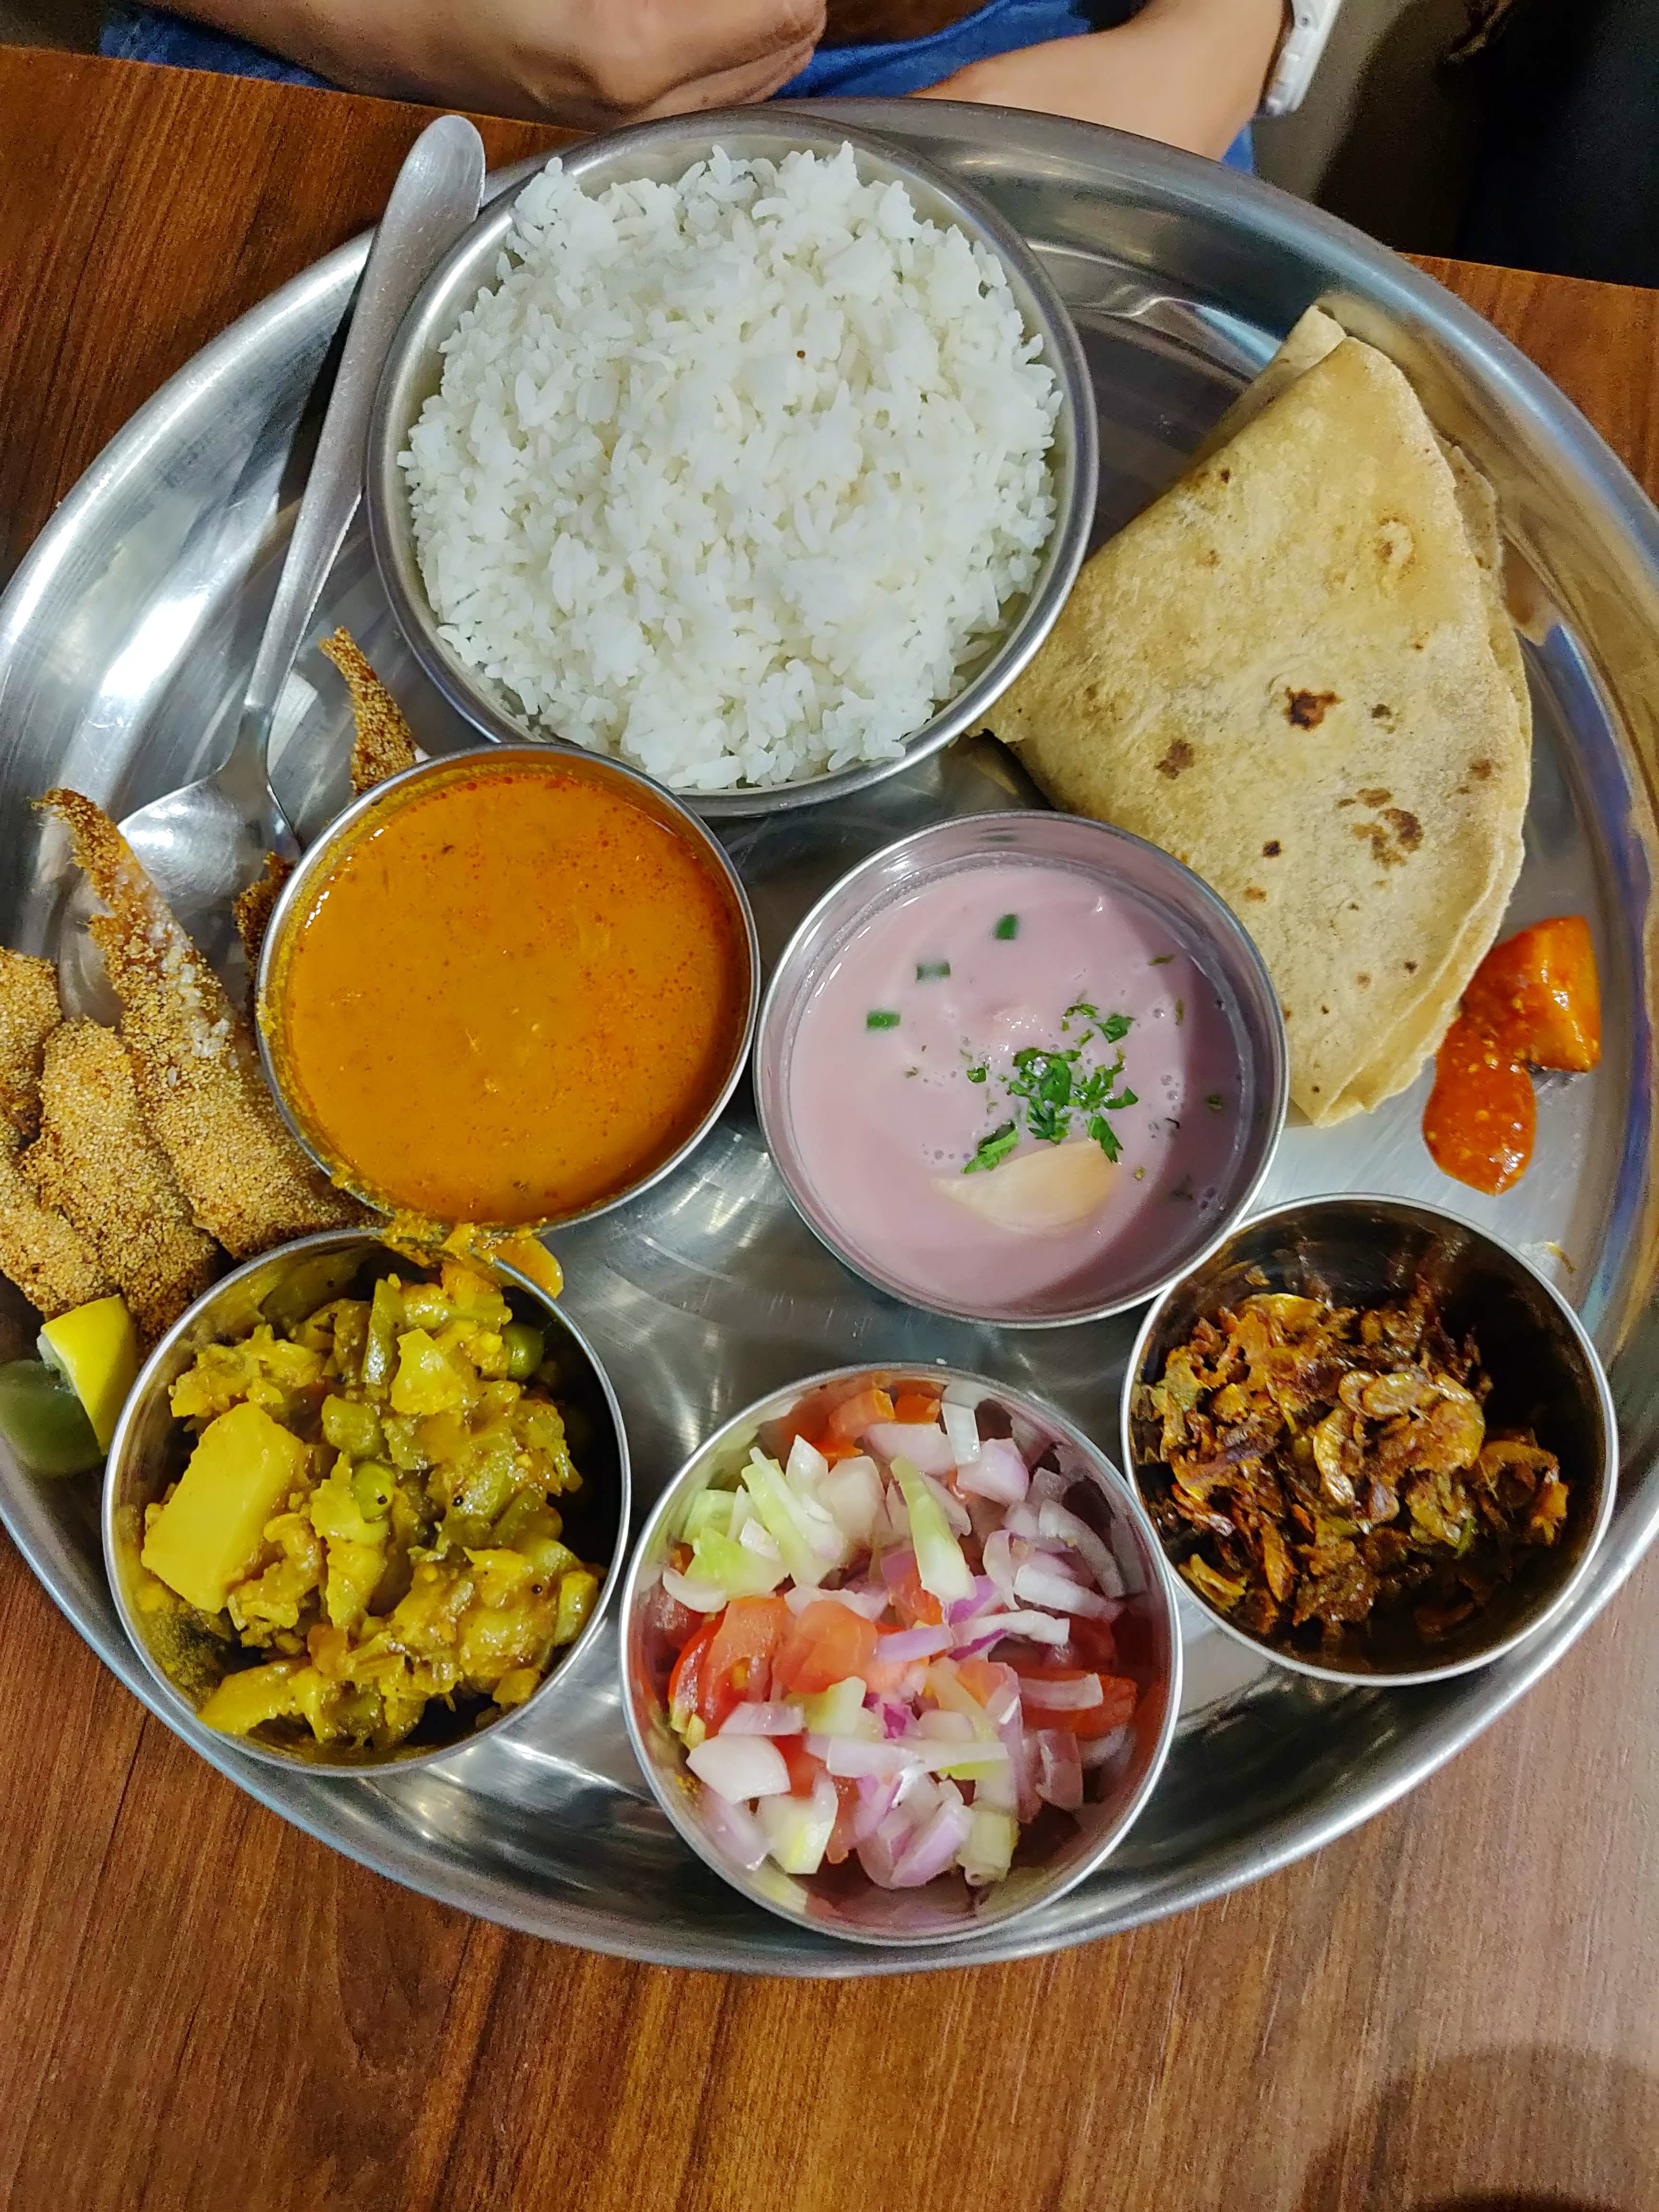 Craving Goan food? This Place Serves Great Seafood Without Burning Your Pocket